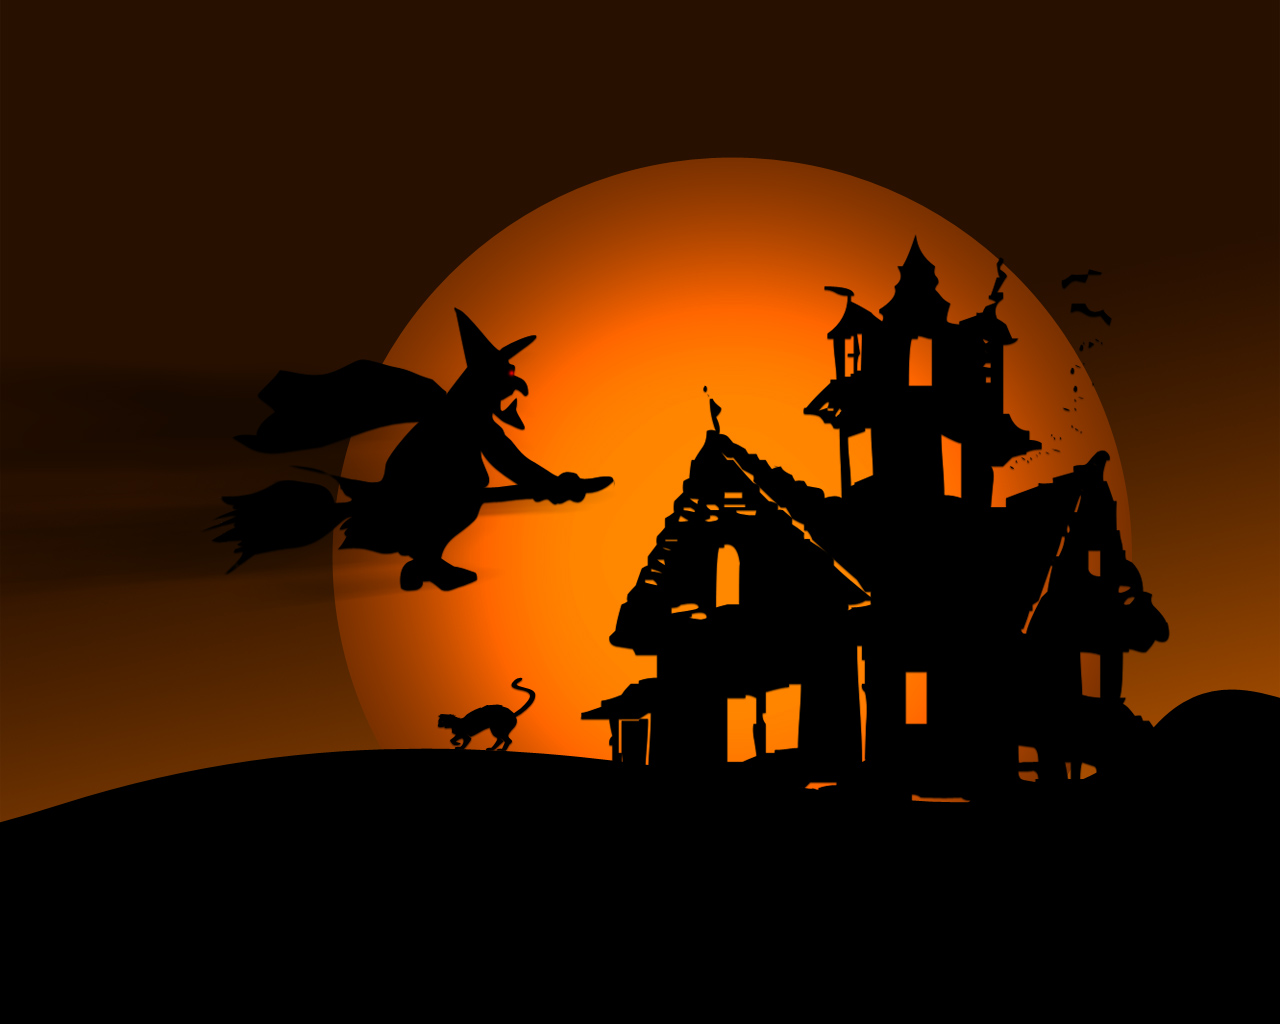 animated halloween wallpaper witches - photo #28